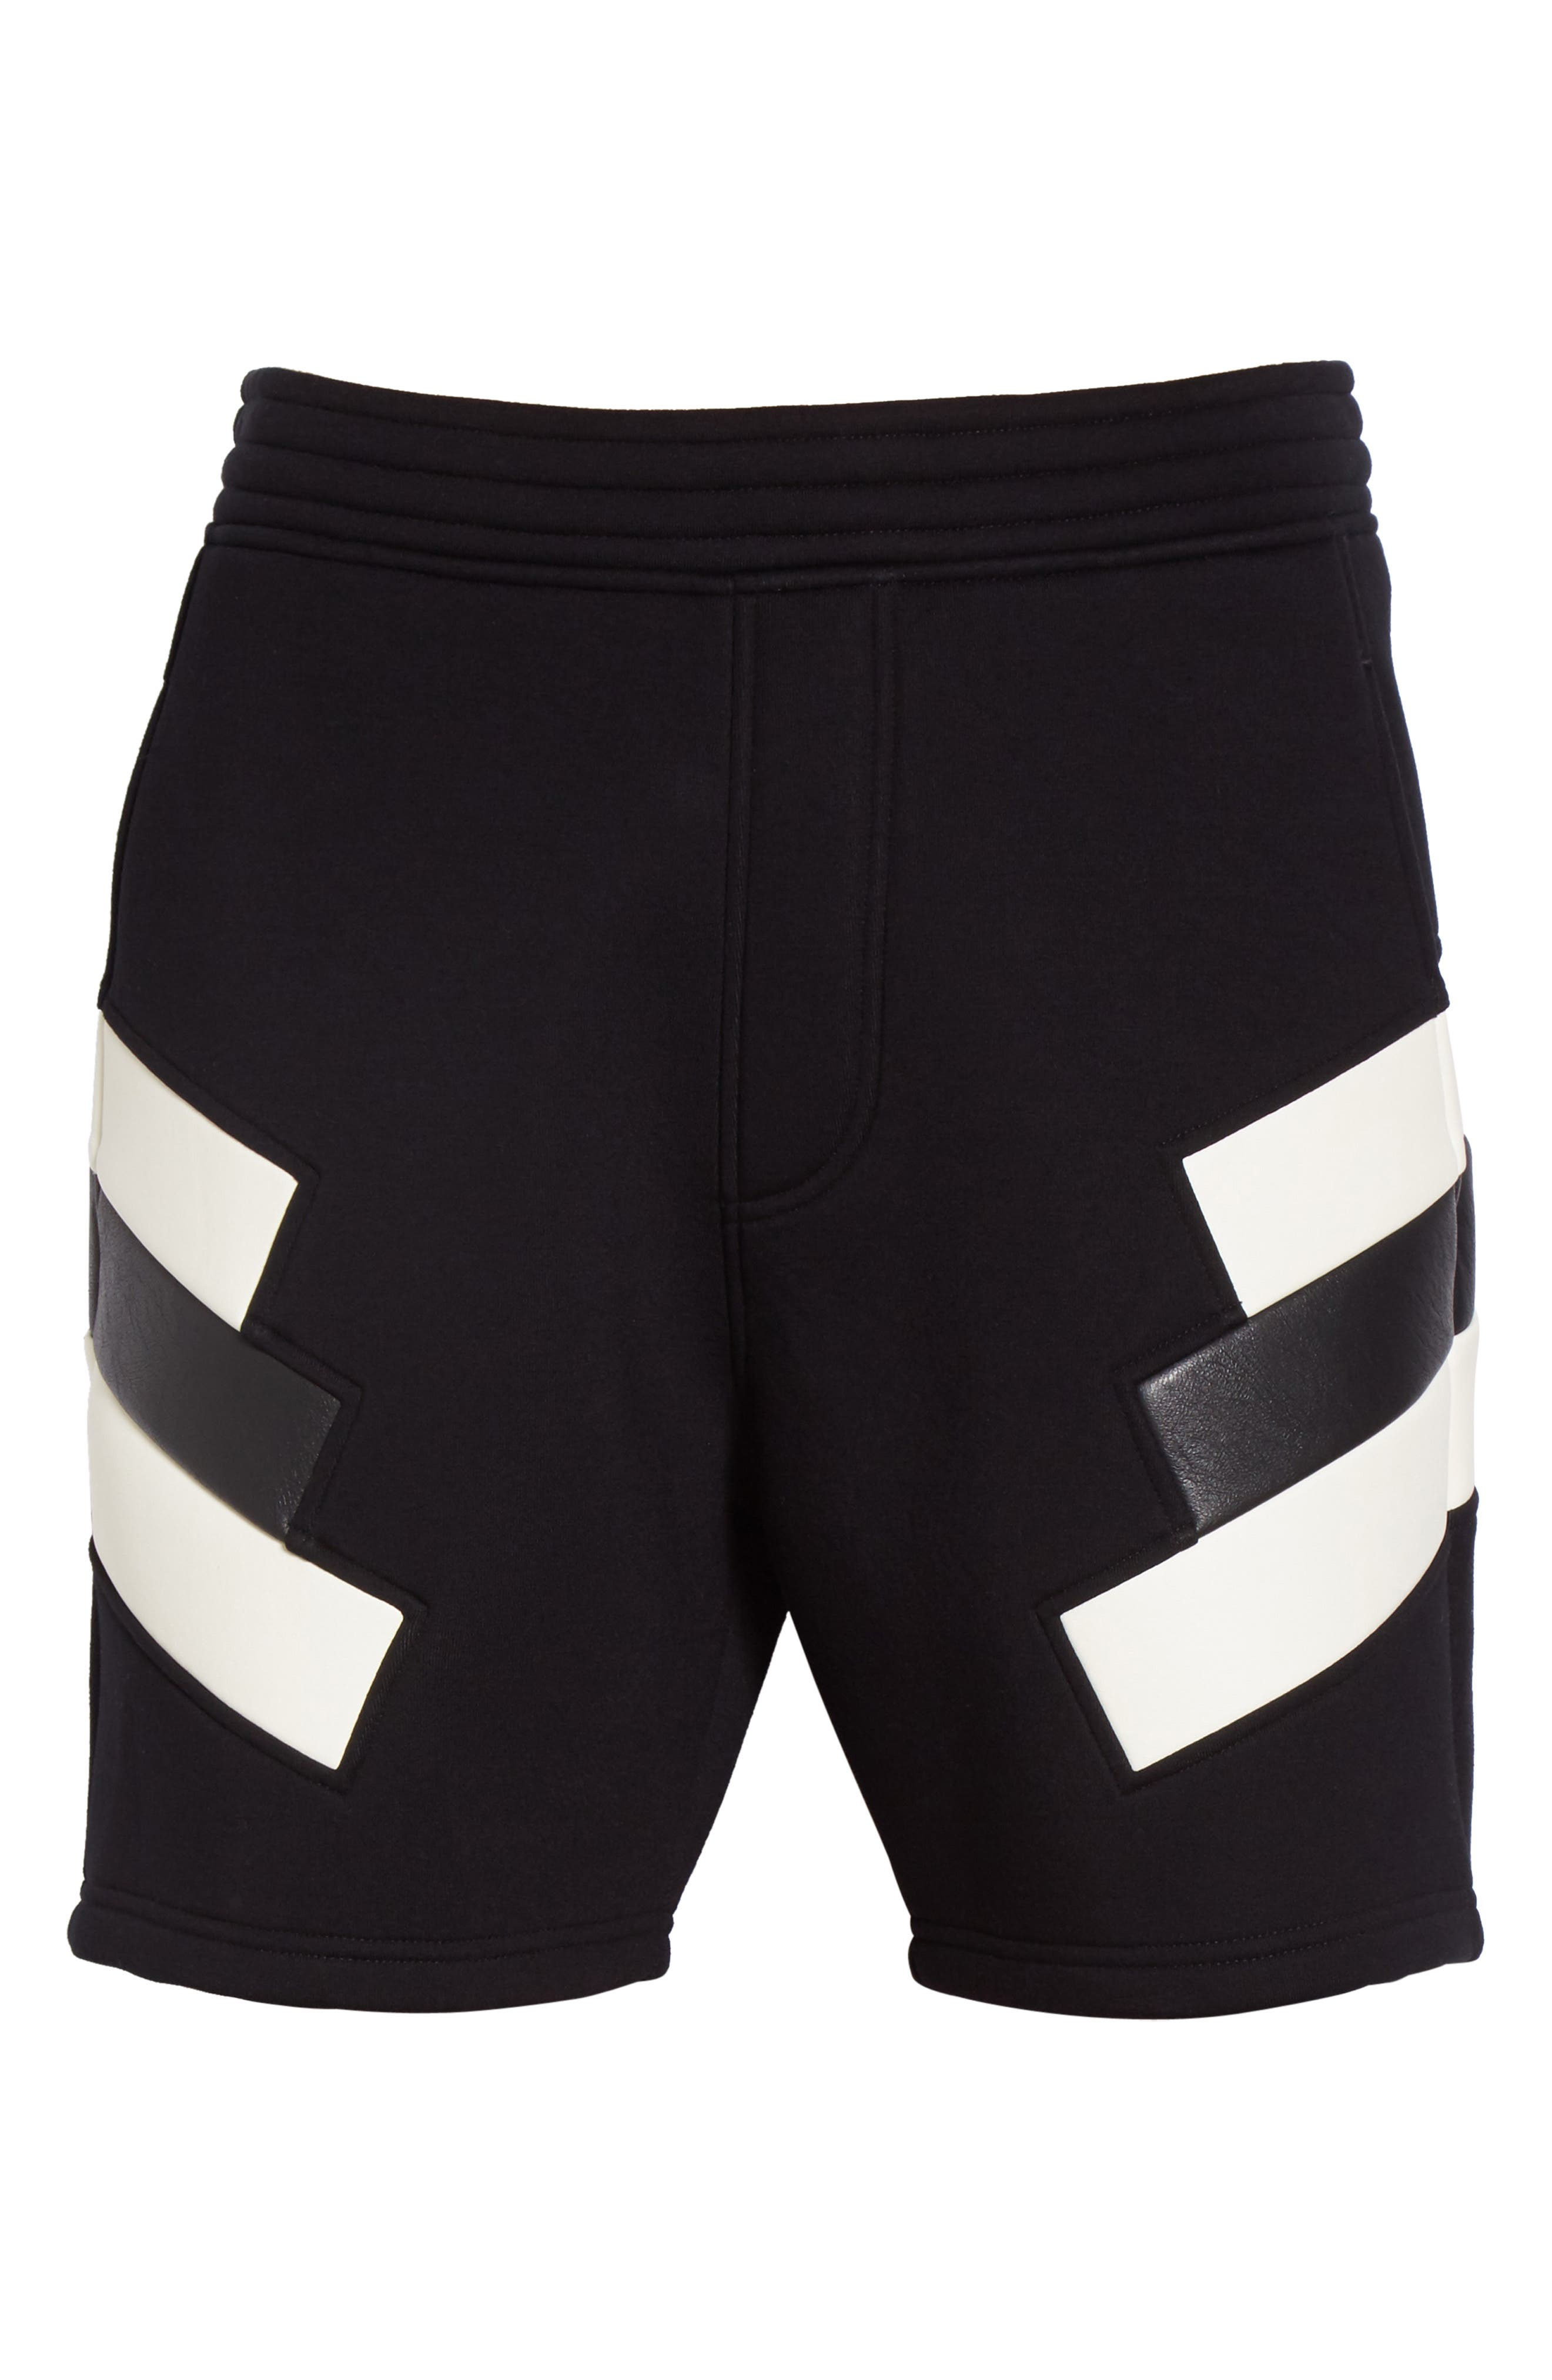 Retro Faux Leather Trim Sweat Shorts,                             Alternate thumbnail 6, color,                             Black/ Off White